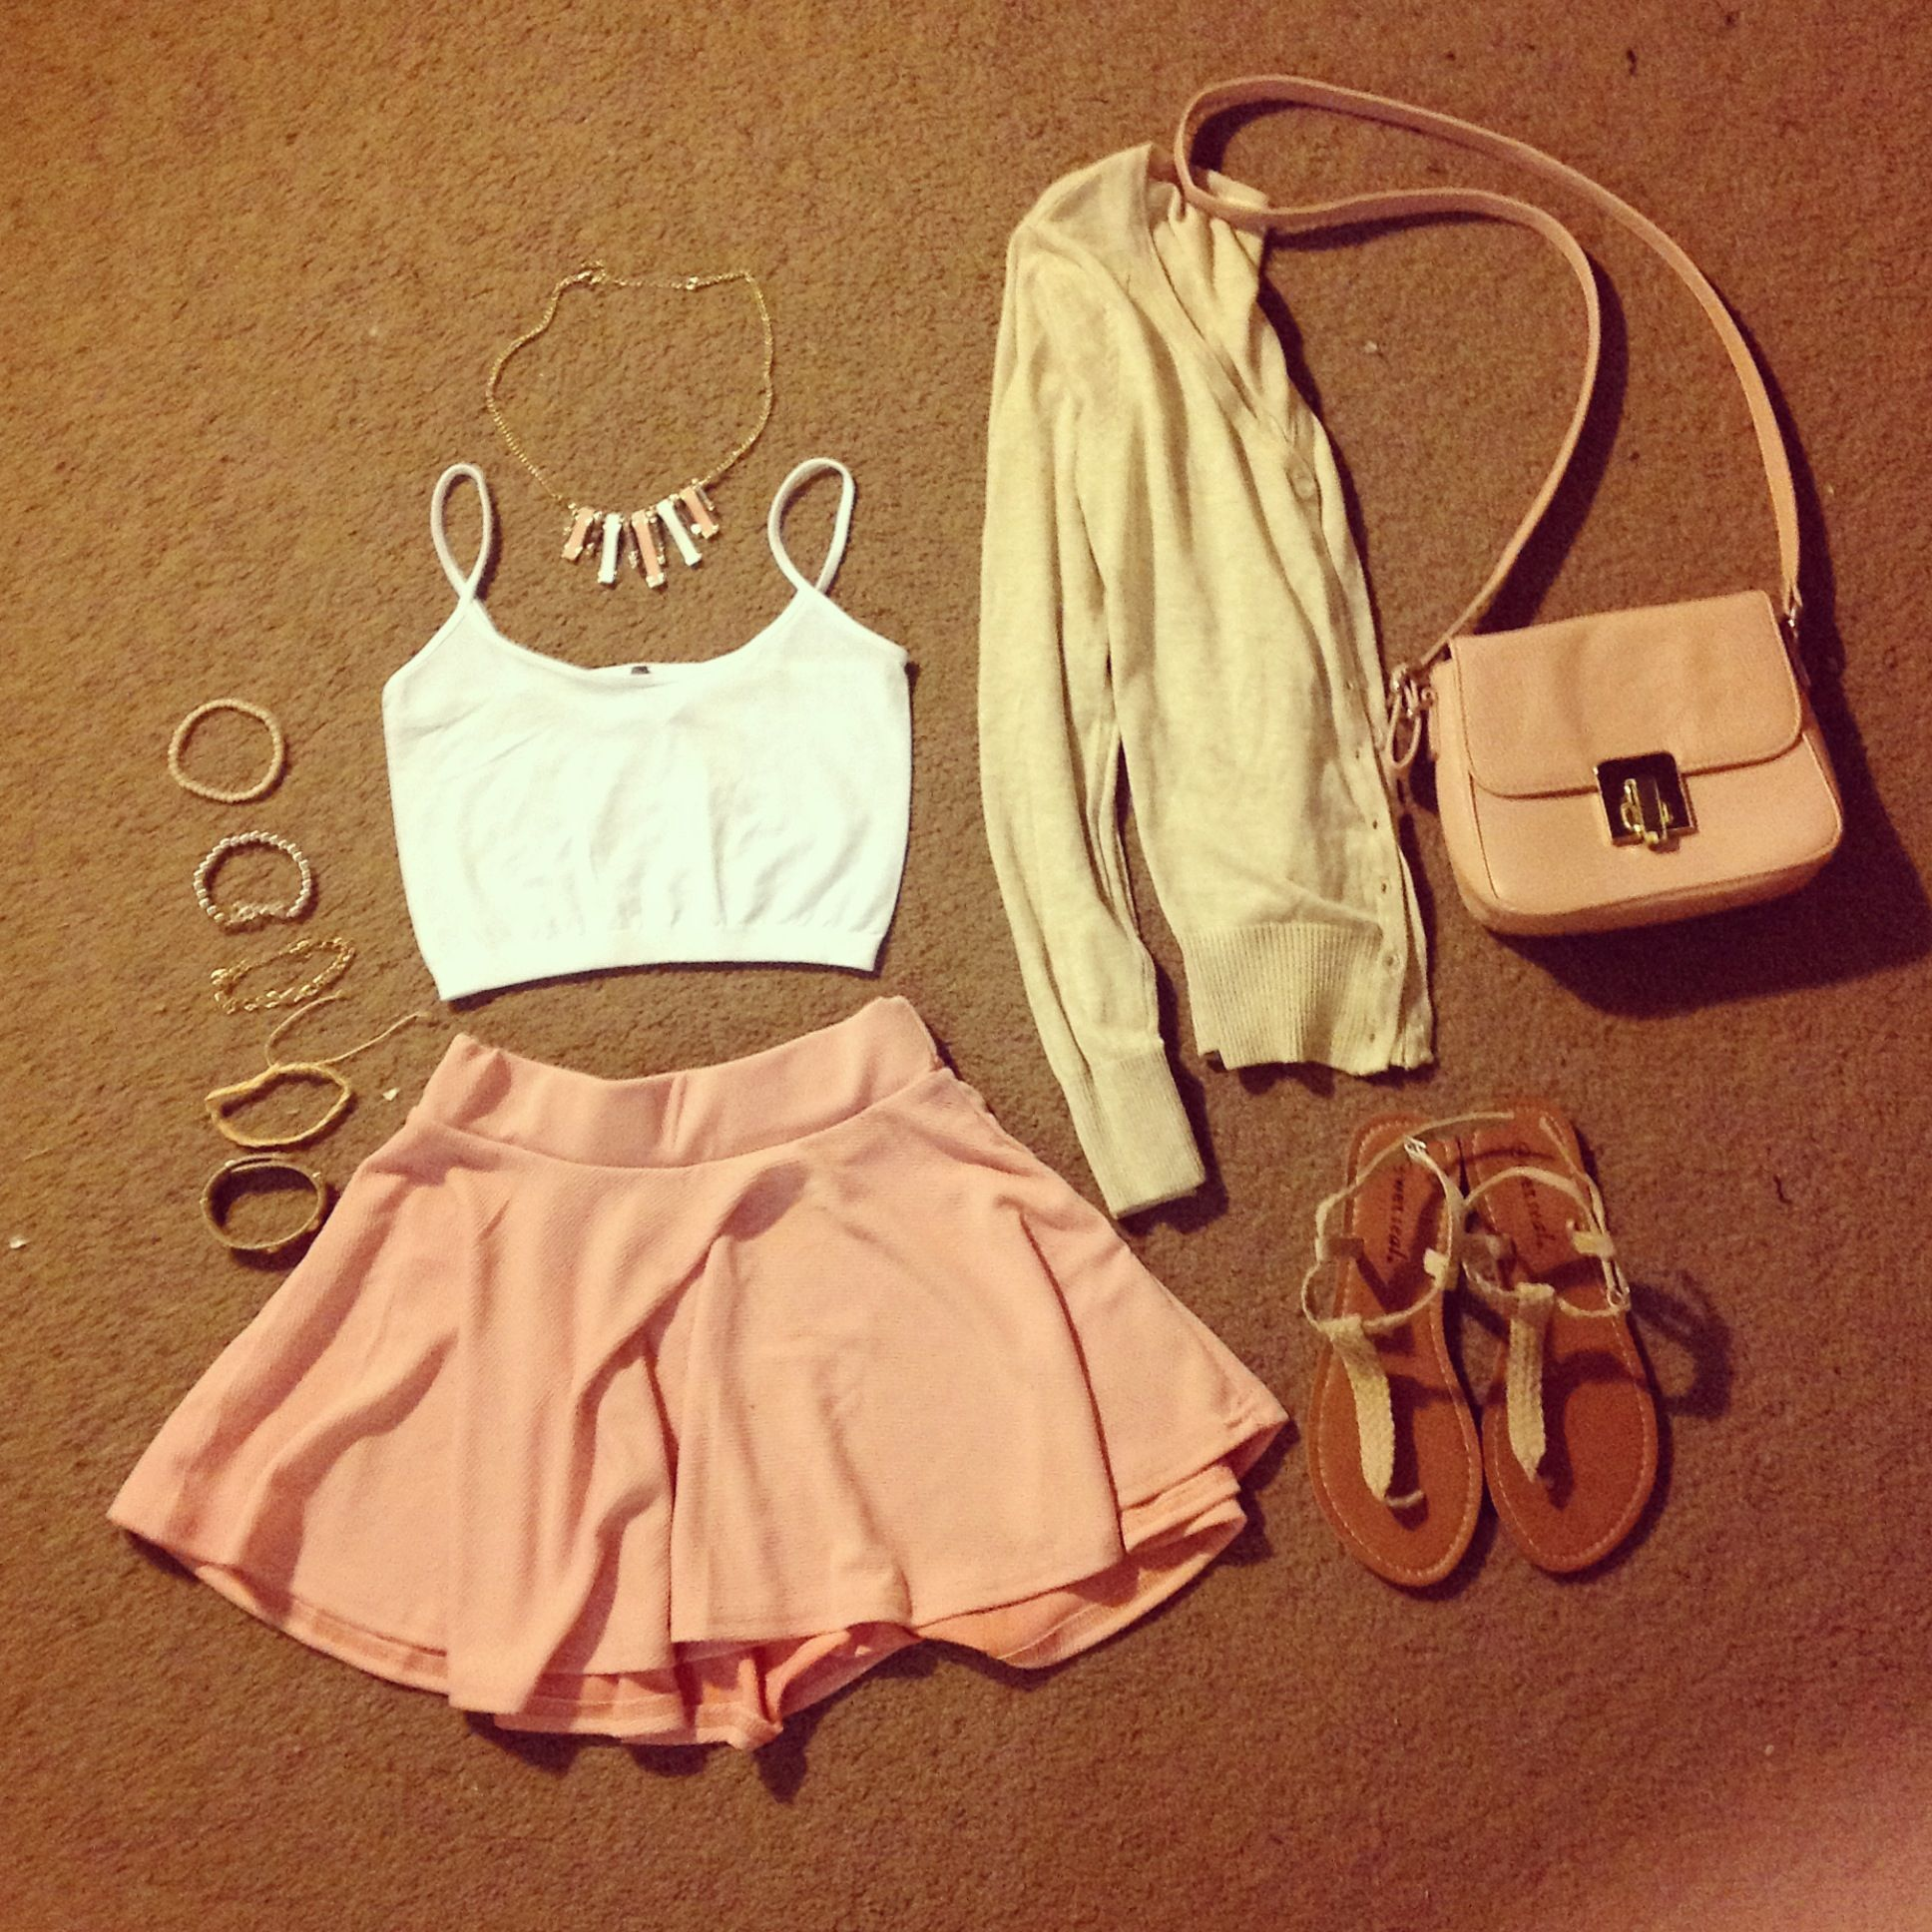 Teen outfits